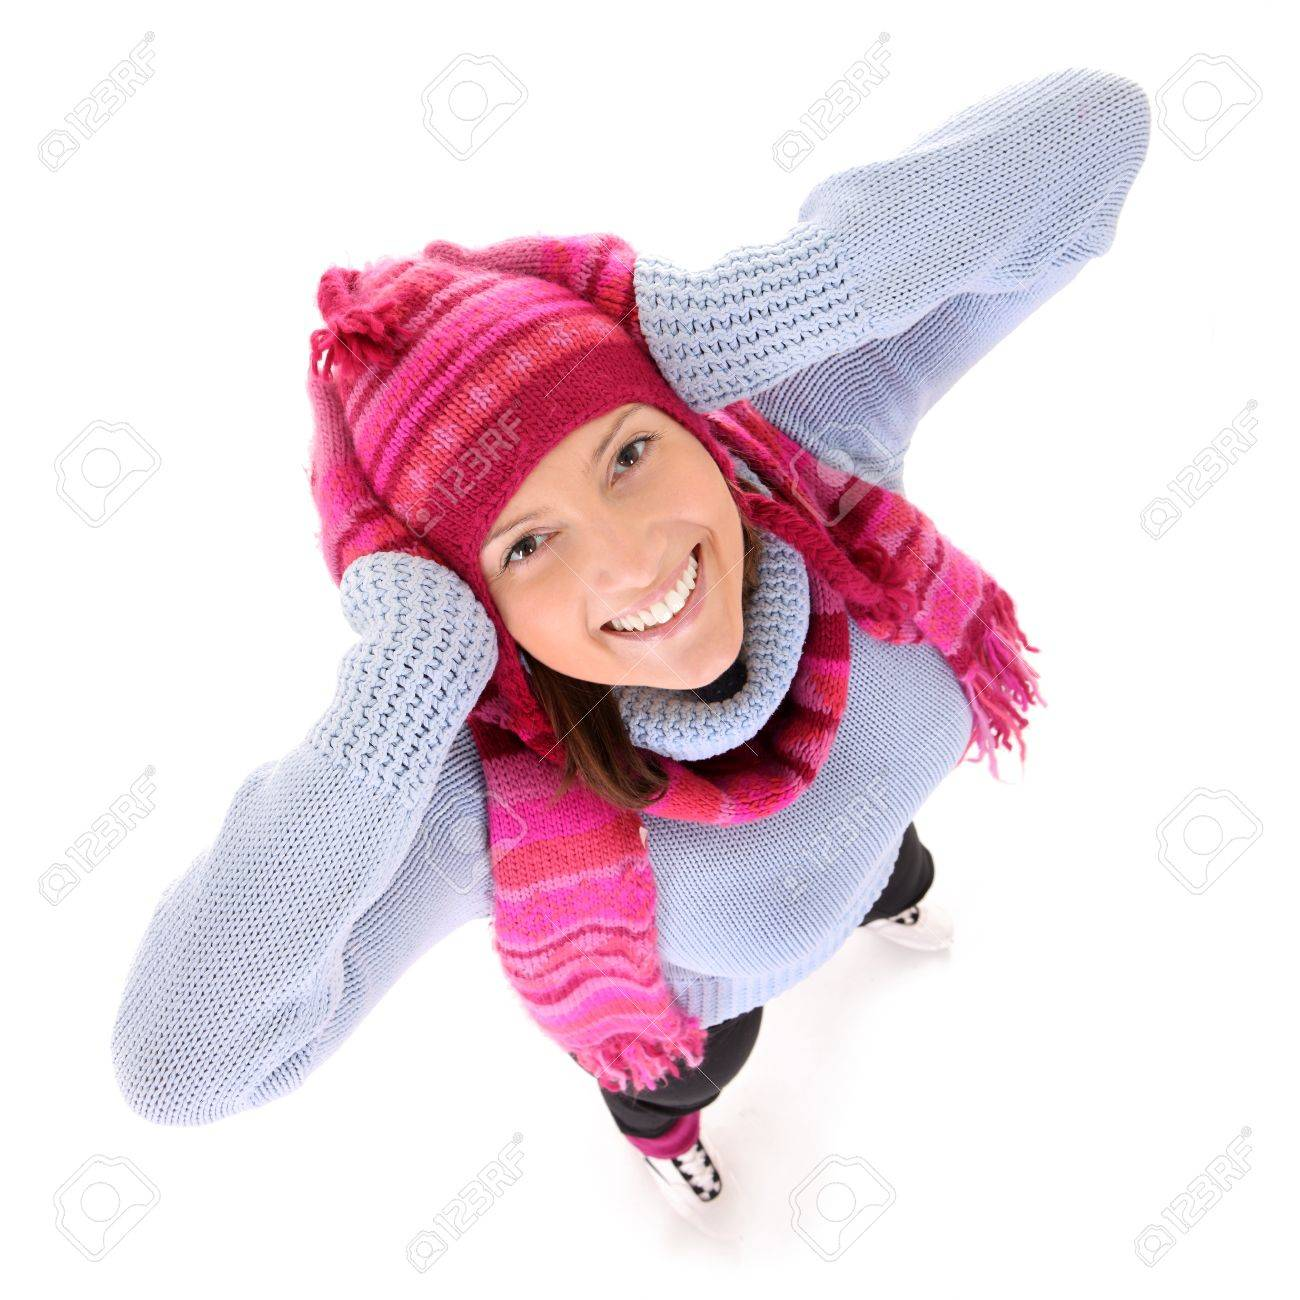 A picture of a young happy woman skating over white background Stock Photo - 11744485